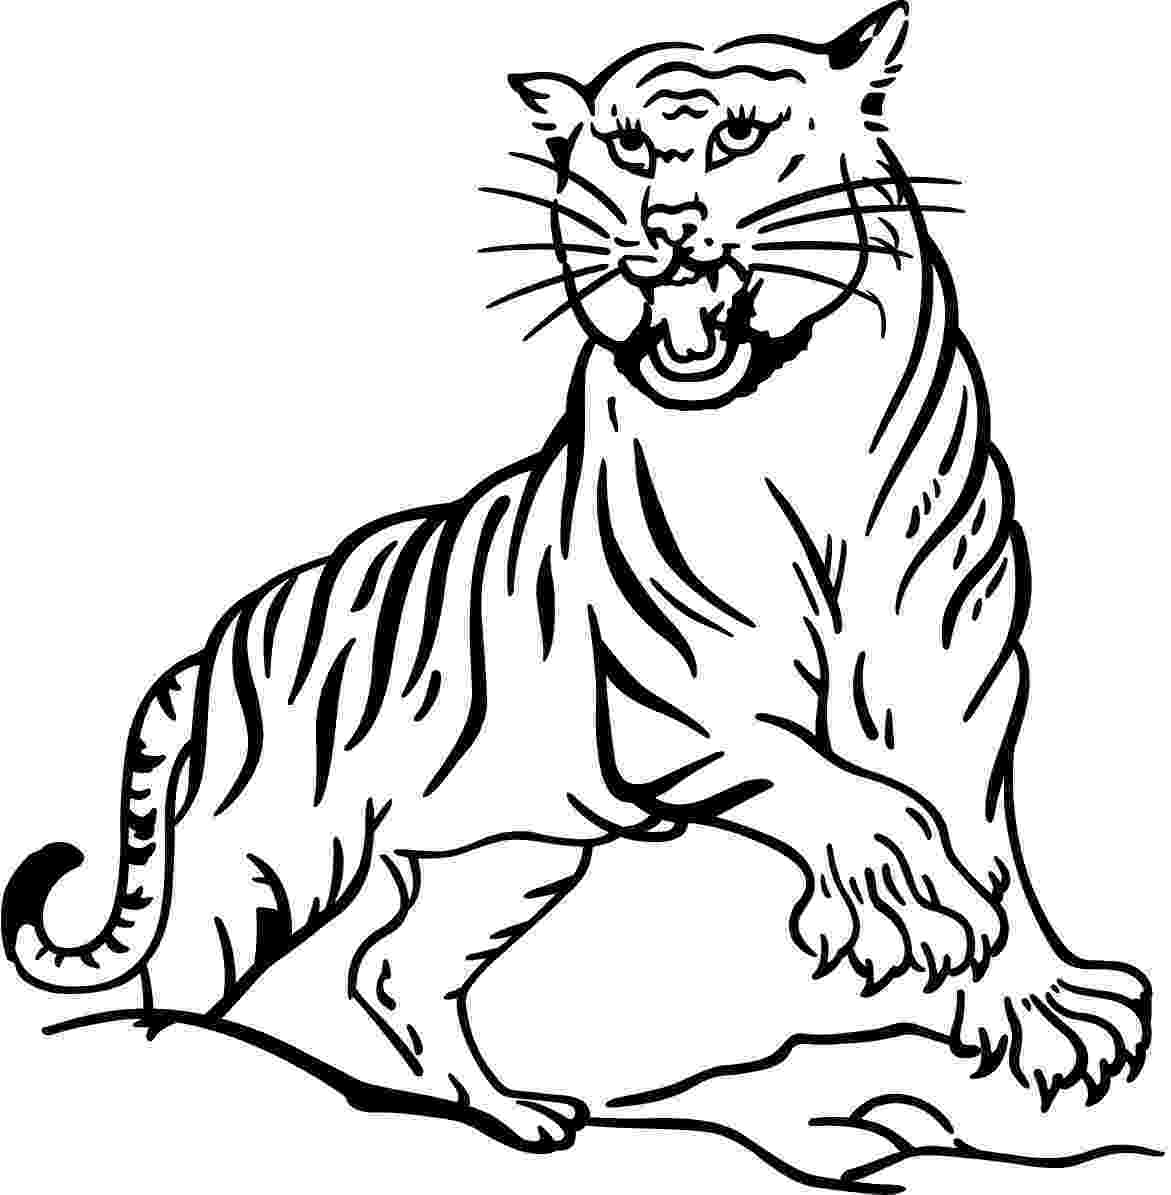 tiger pictures to print and color free printable tiger coloring pages for kids and pictures tiger to color print